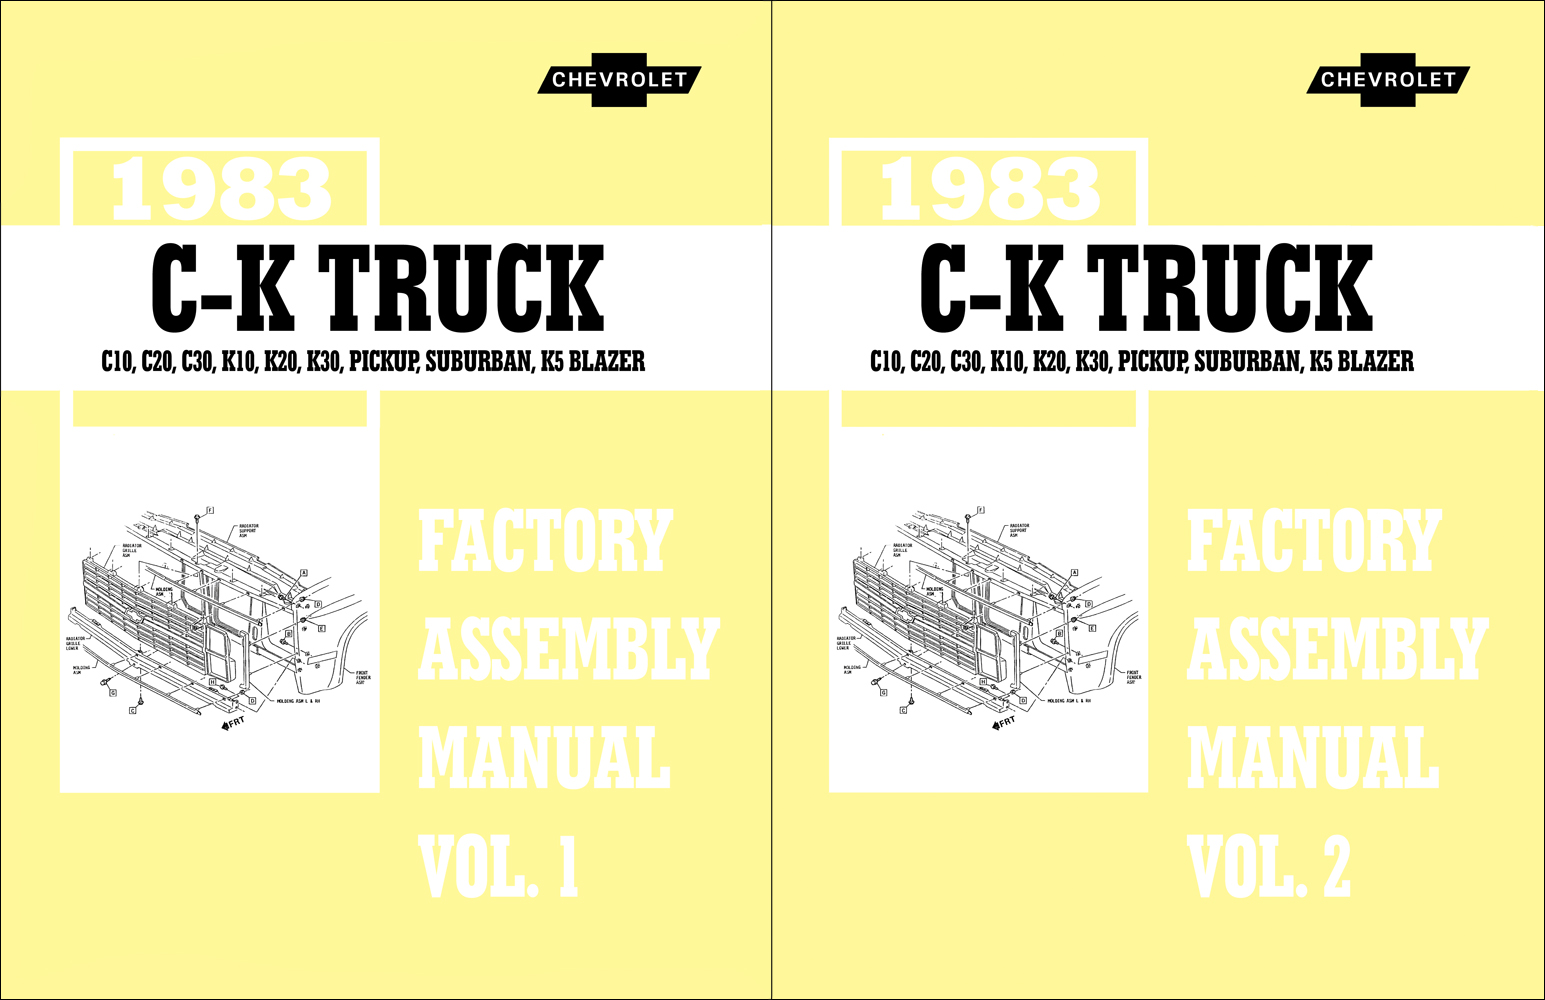 1983 Chevy CK Truck Assembly Manual Reprint Pickup Suburban Blazer also GMC